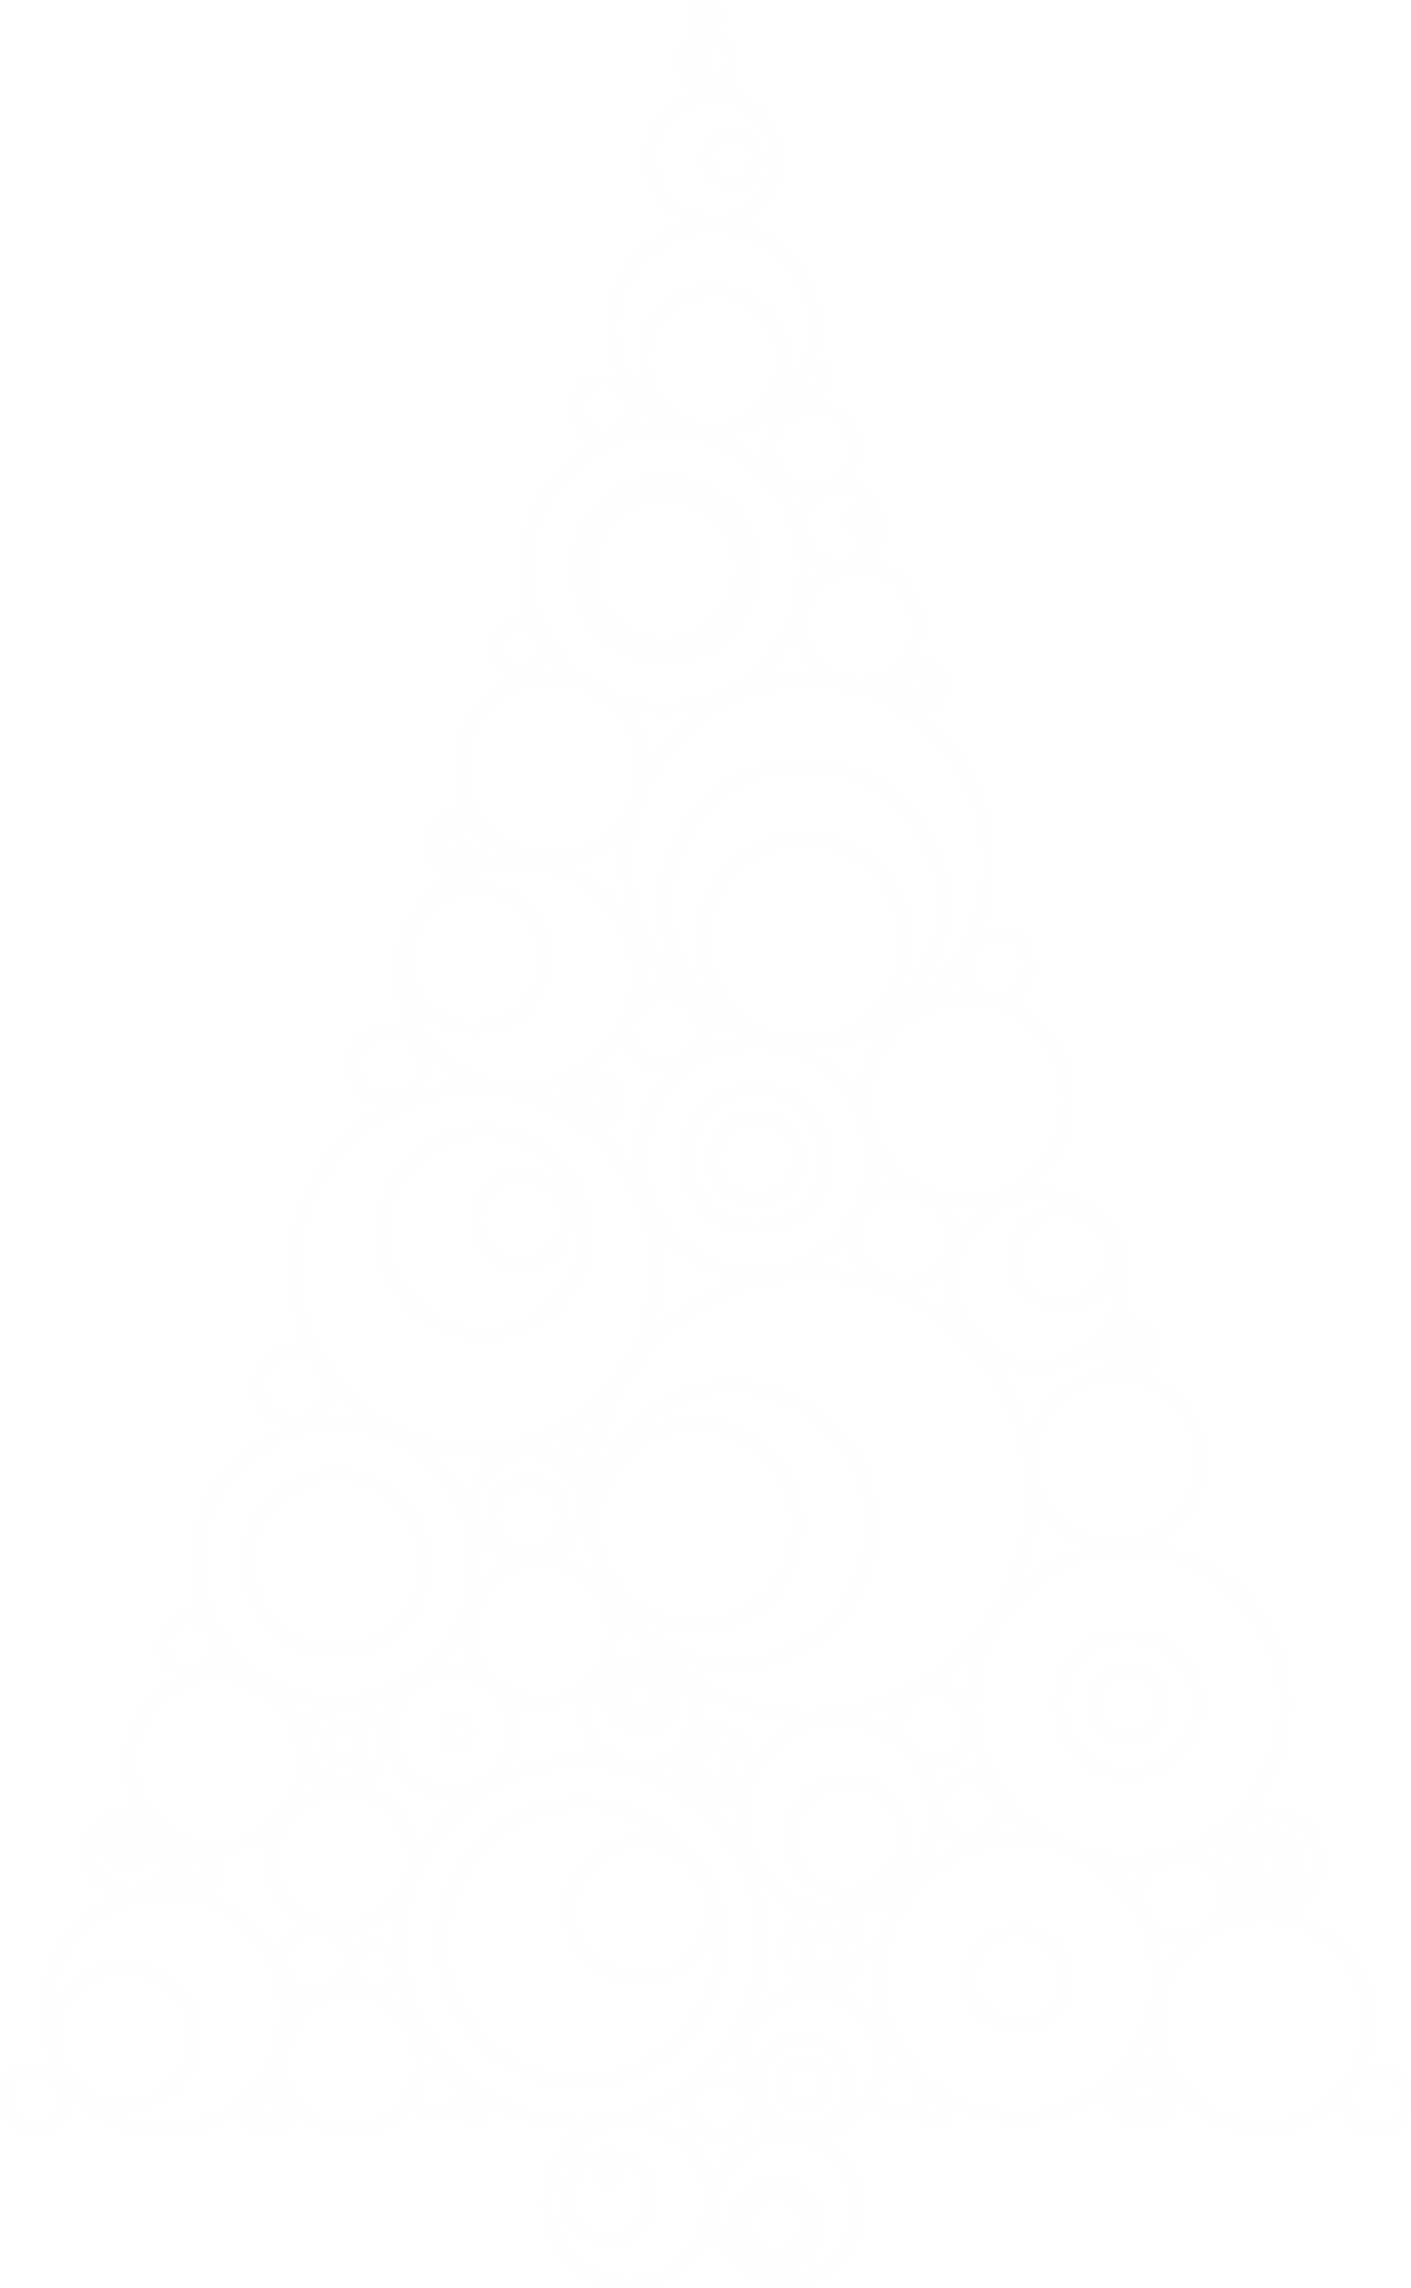 Abstract Circles Christmas Tree With No Background by GDJ